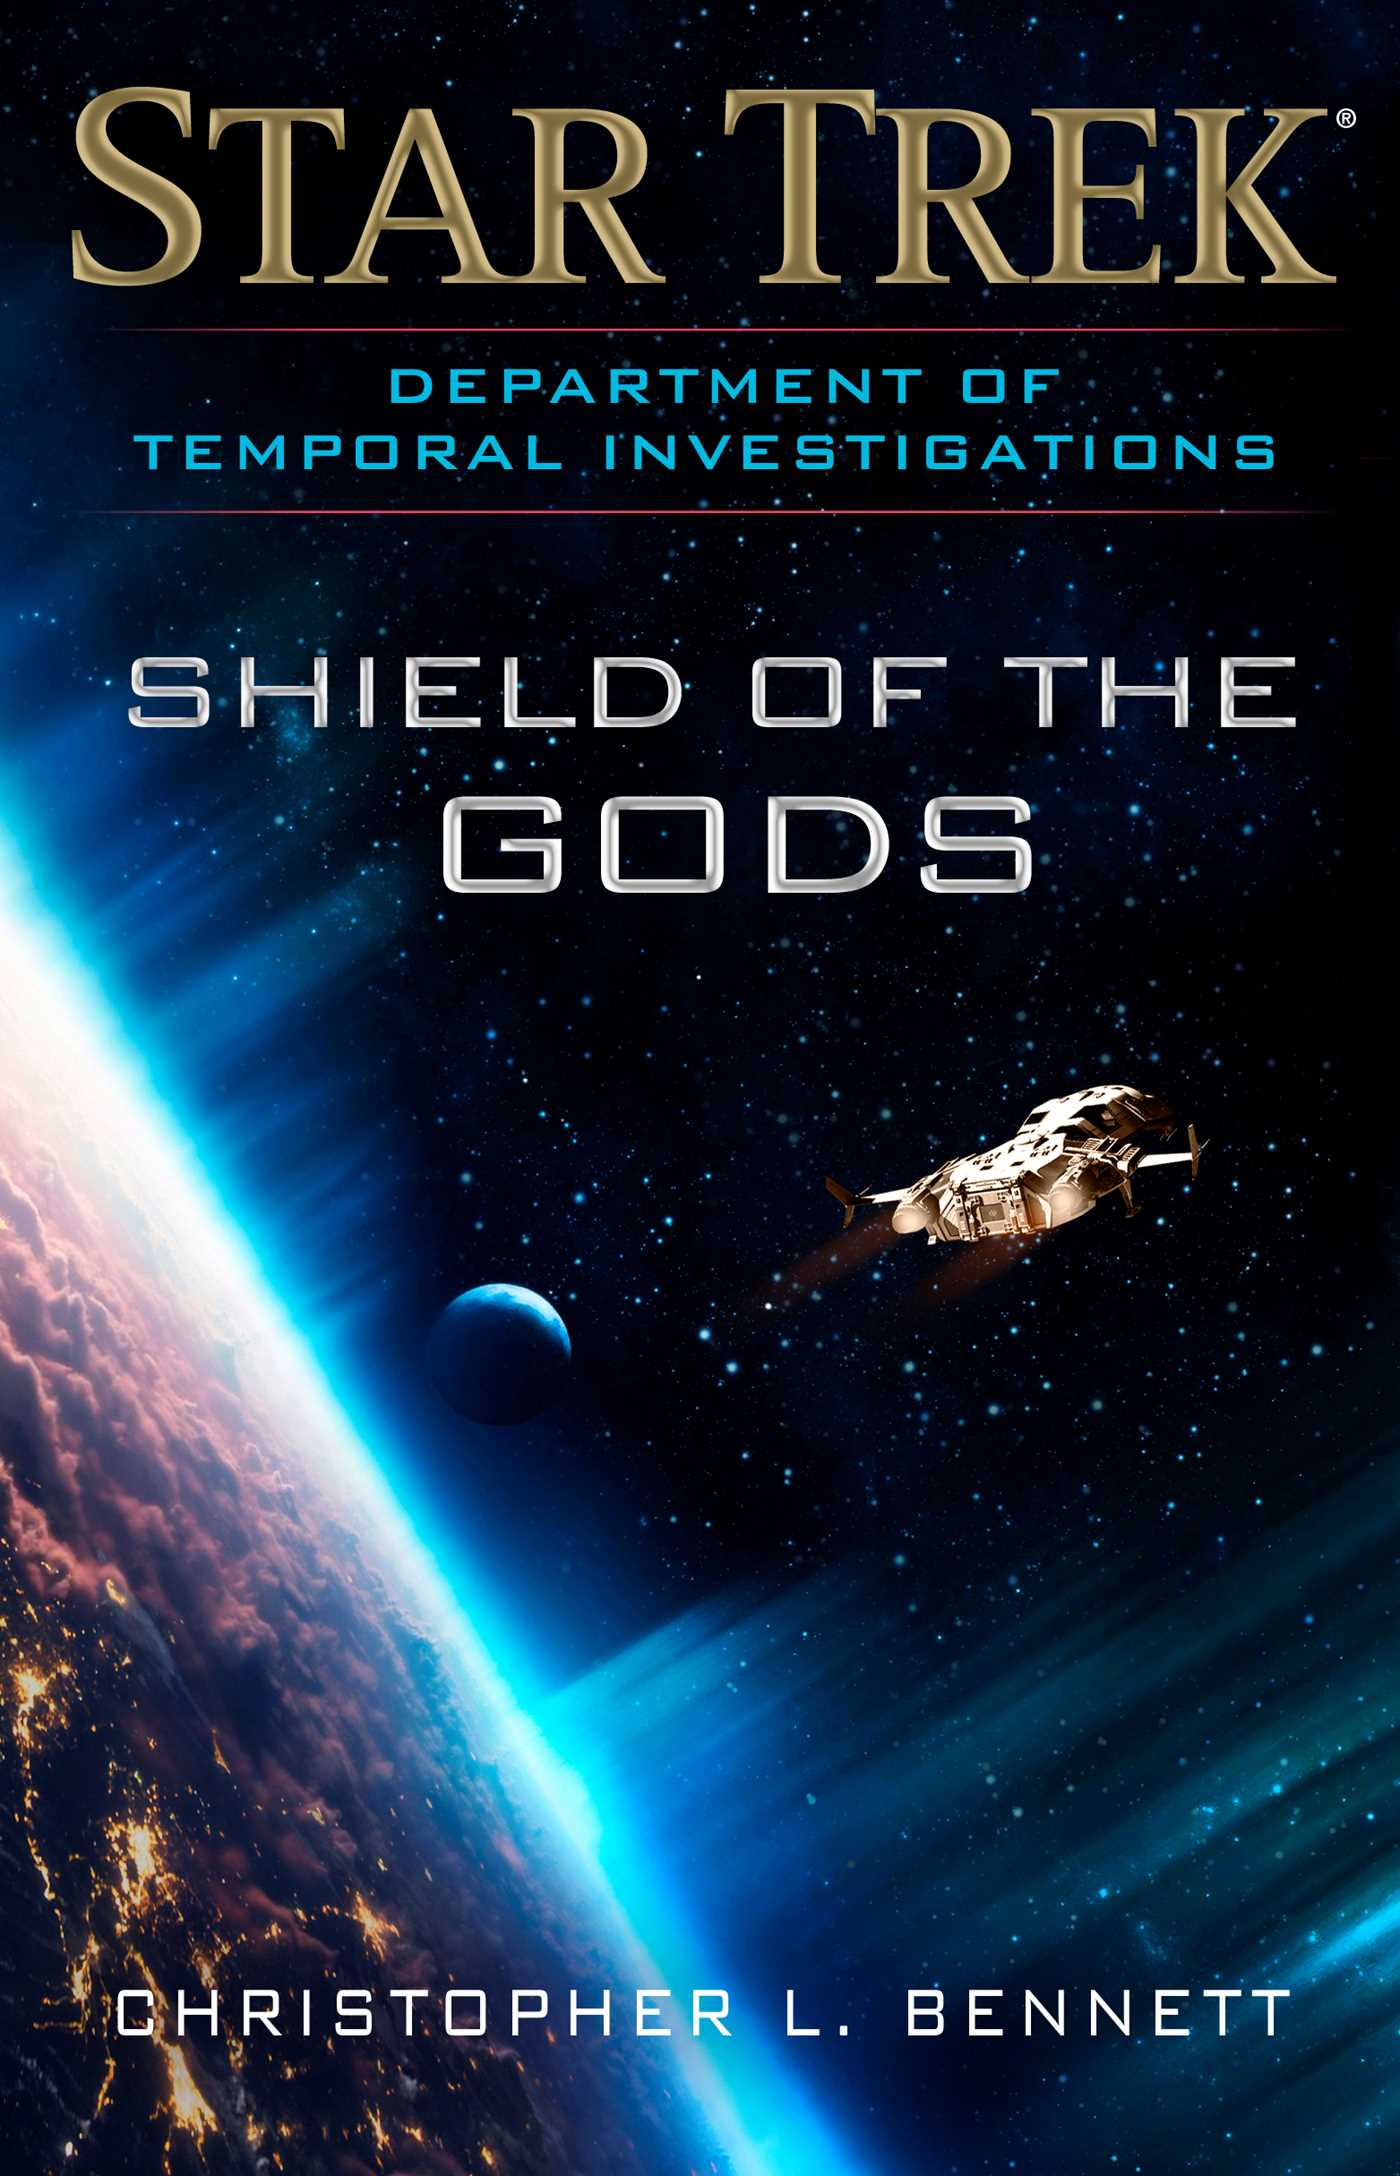 Department of temporal investigations shield of the gods 9781501164880 hr